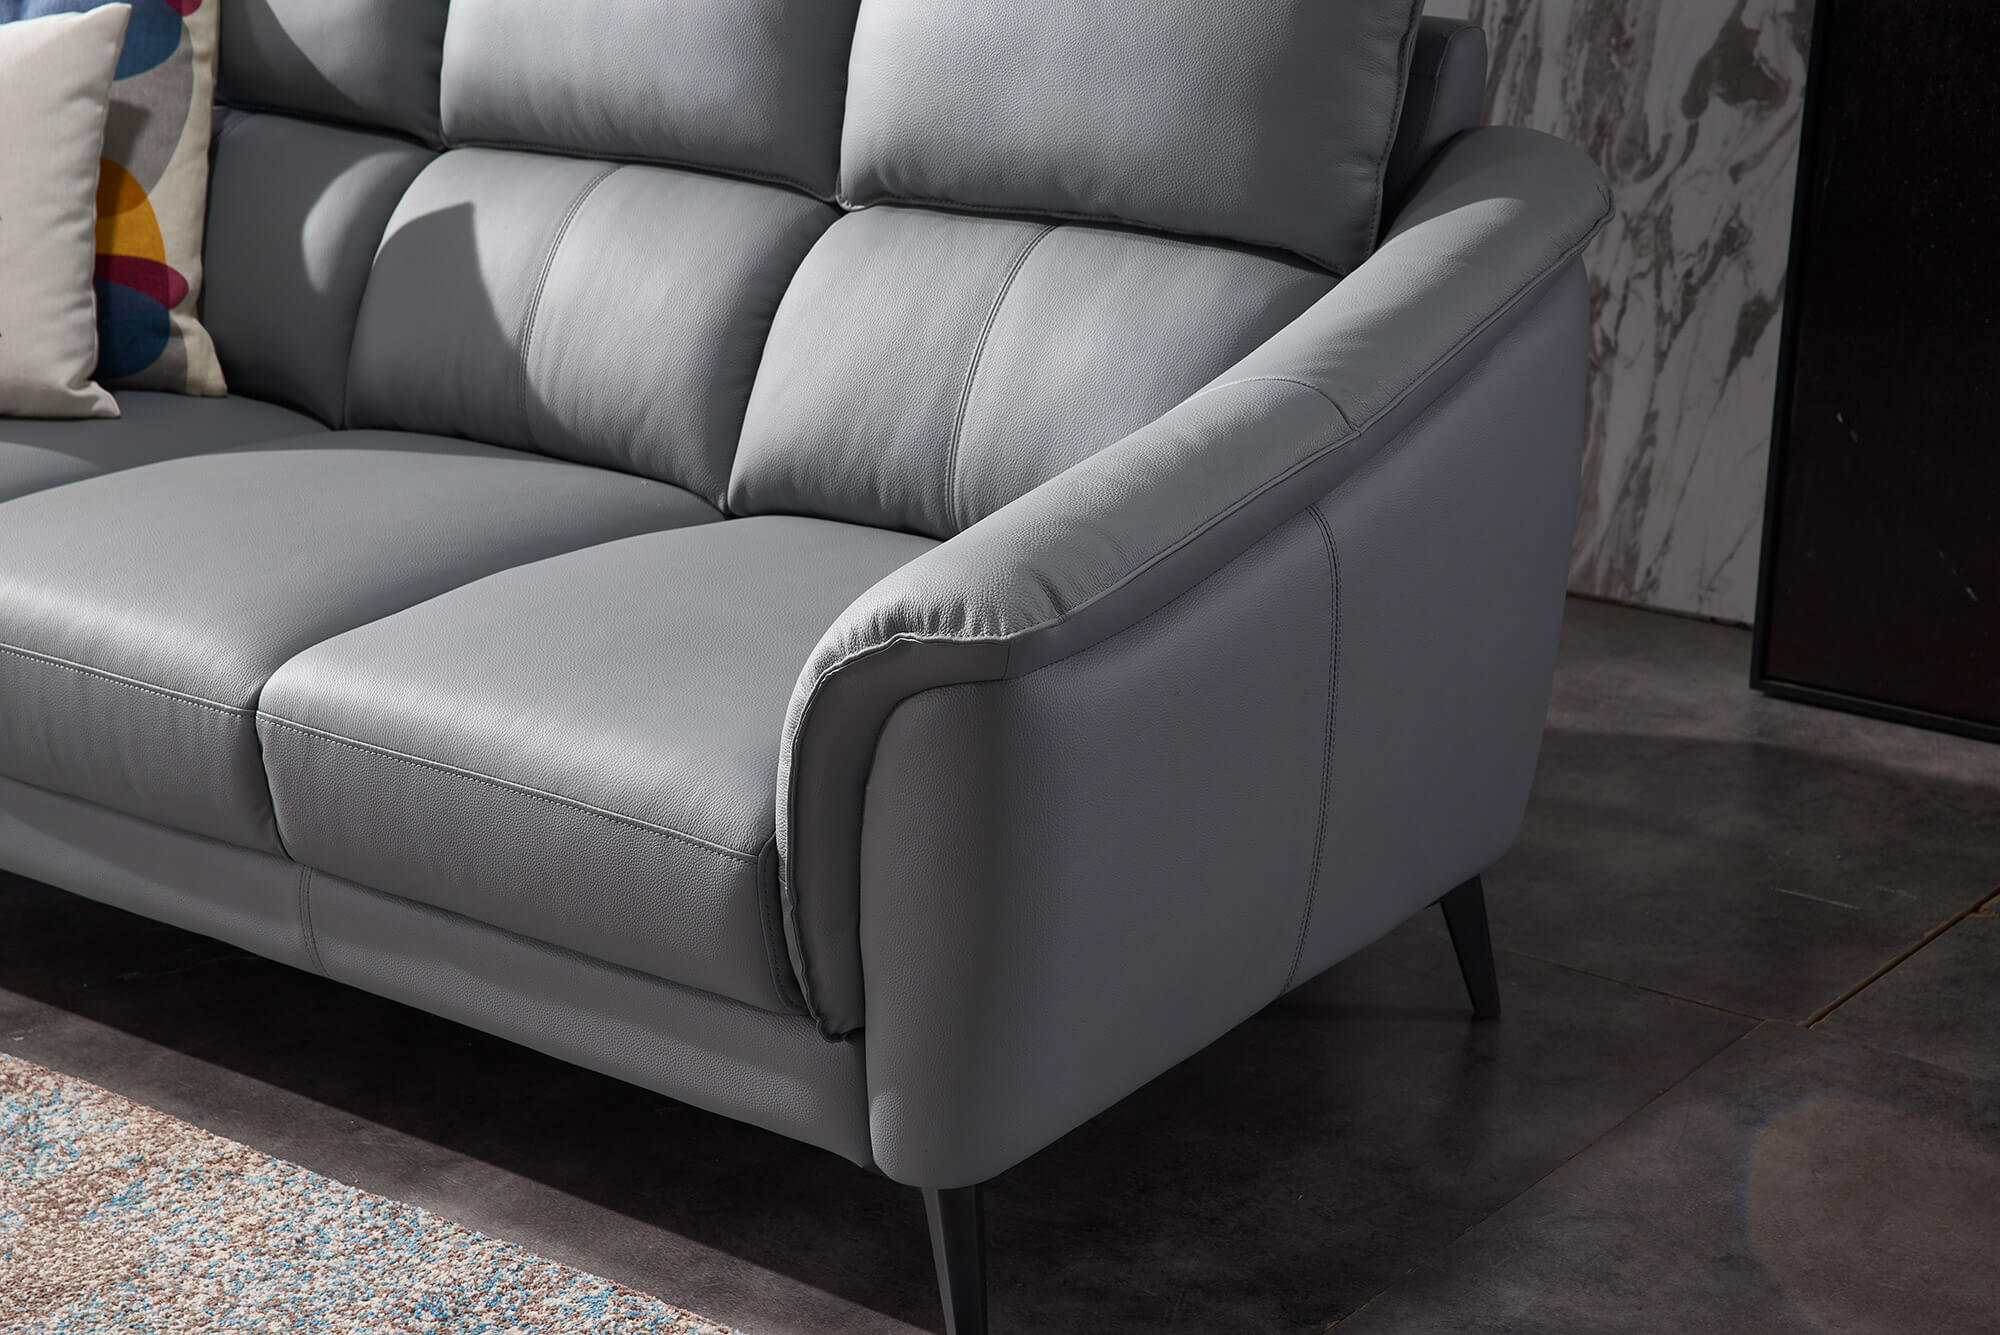 steel grey leather three seater sofa side view